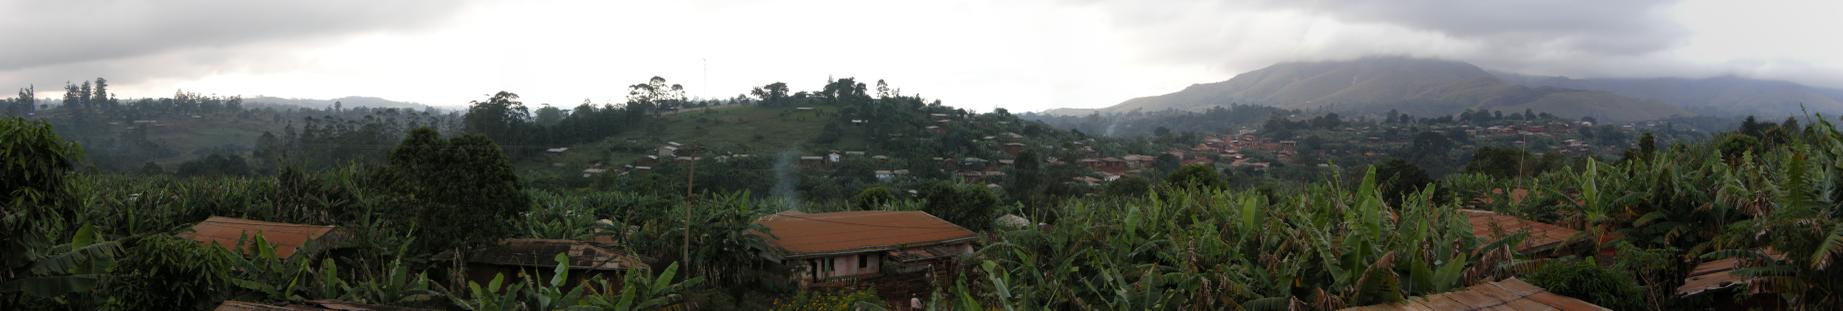 http://cameroon.betacantrips.com/wp-content/uploads/2010/11/balcony-scale0.25.jpg